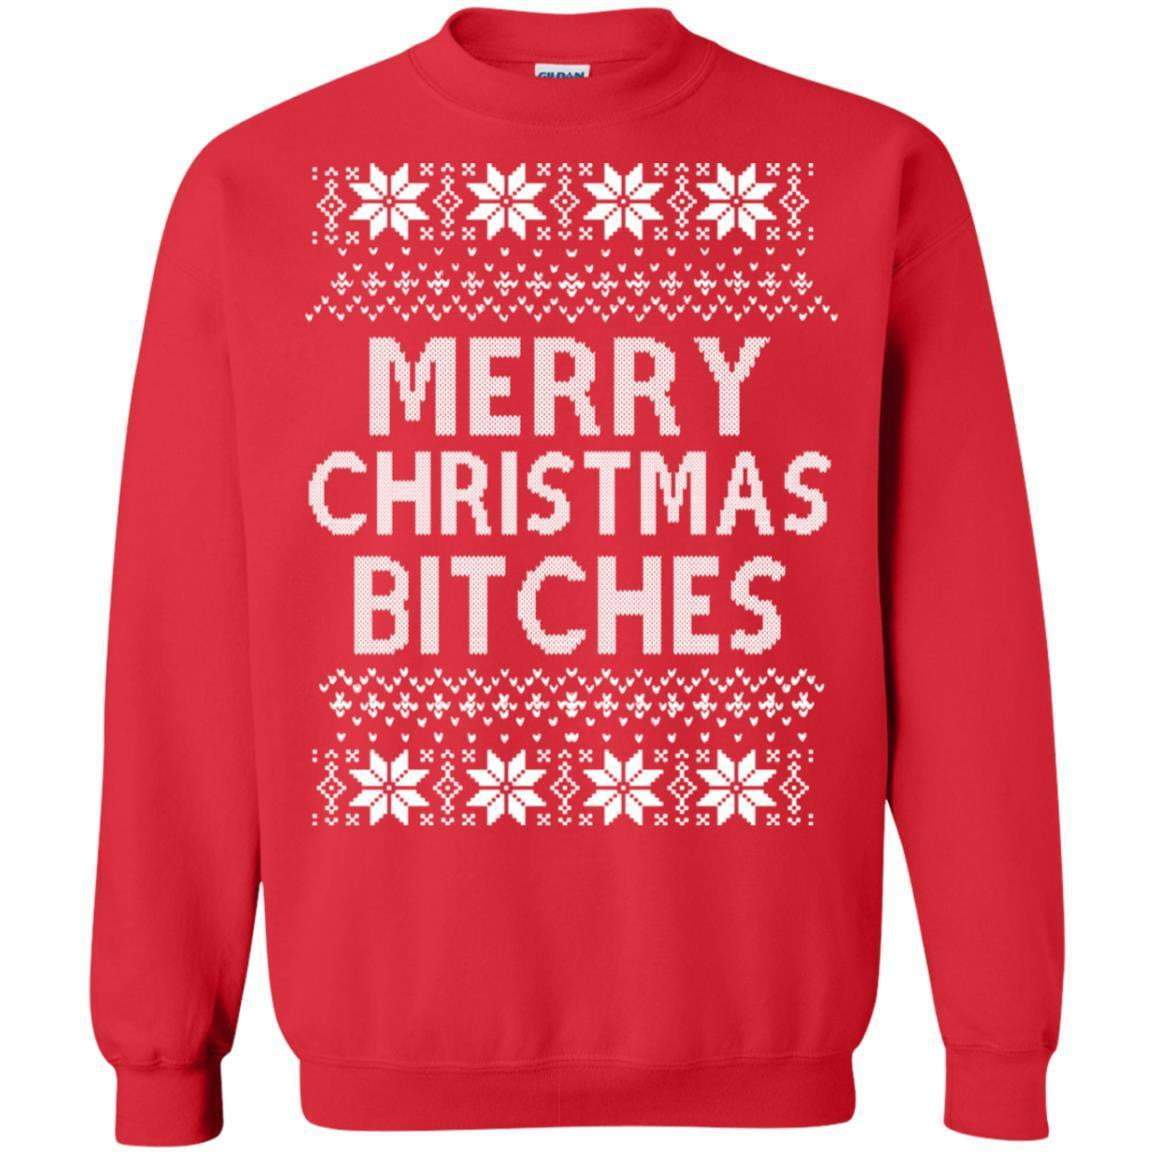 d6a4c155a Christmas Sweaters | Funny Christmas Sweatshirts | 21 Threads